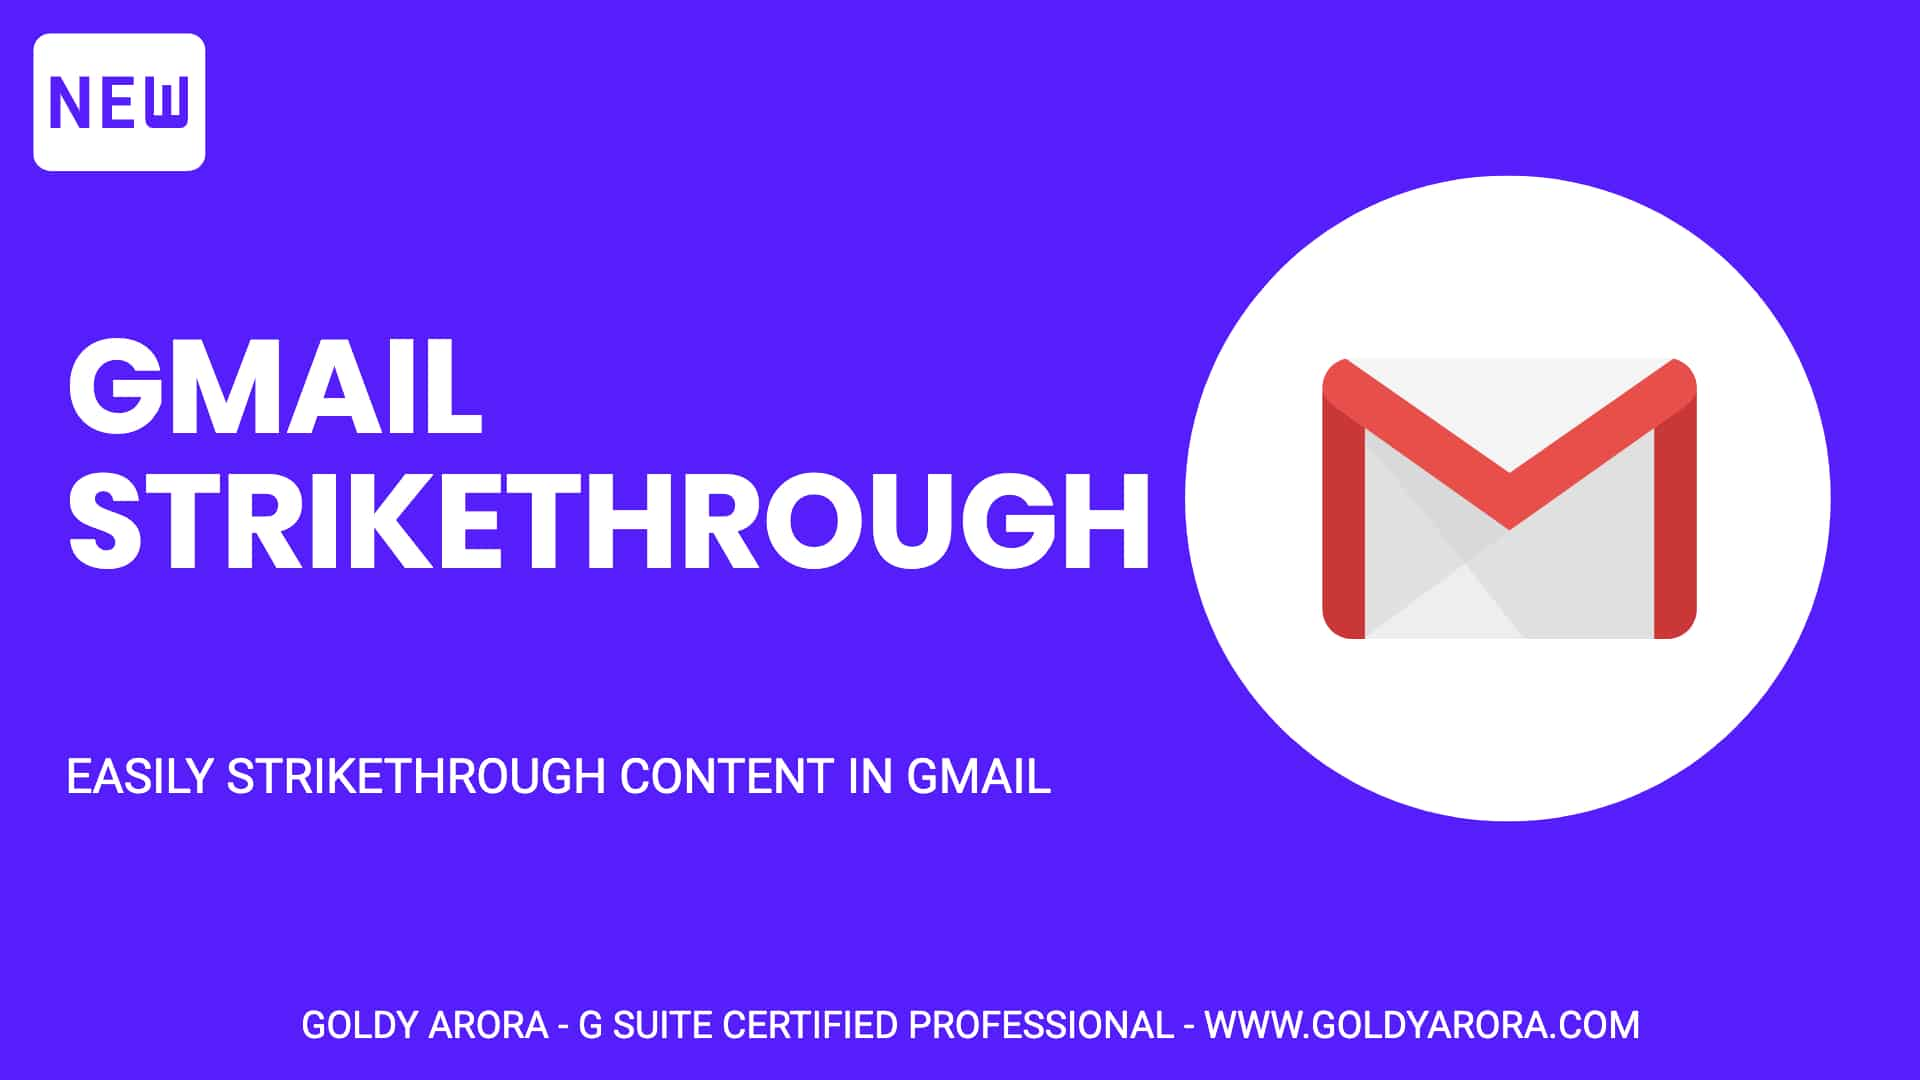 EASILY STRIKETHROUGH CONTENT IN GMAIL